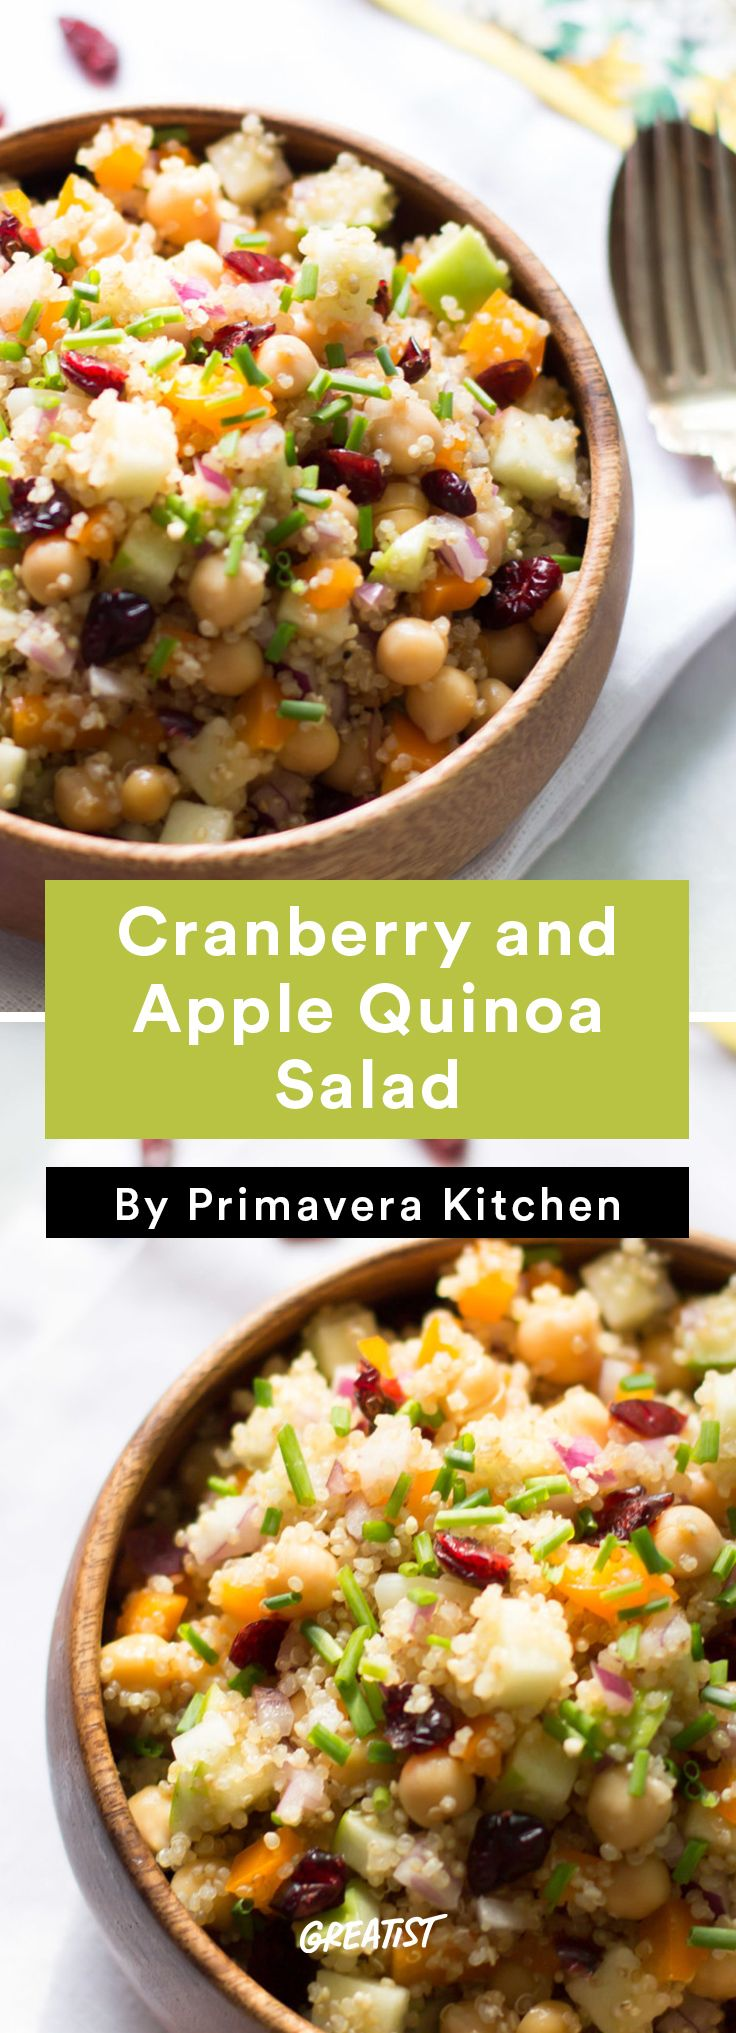 7. Cranberry and Apple Quinoa Salad #healthy #fall #brunch #recipes http://greatist.com/eat/brunch-recipes-for-fall